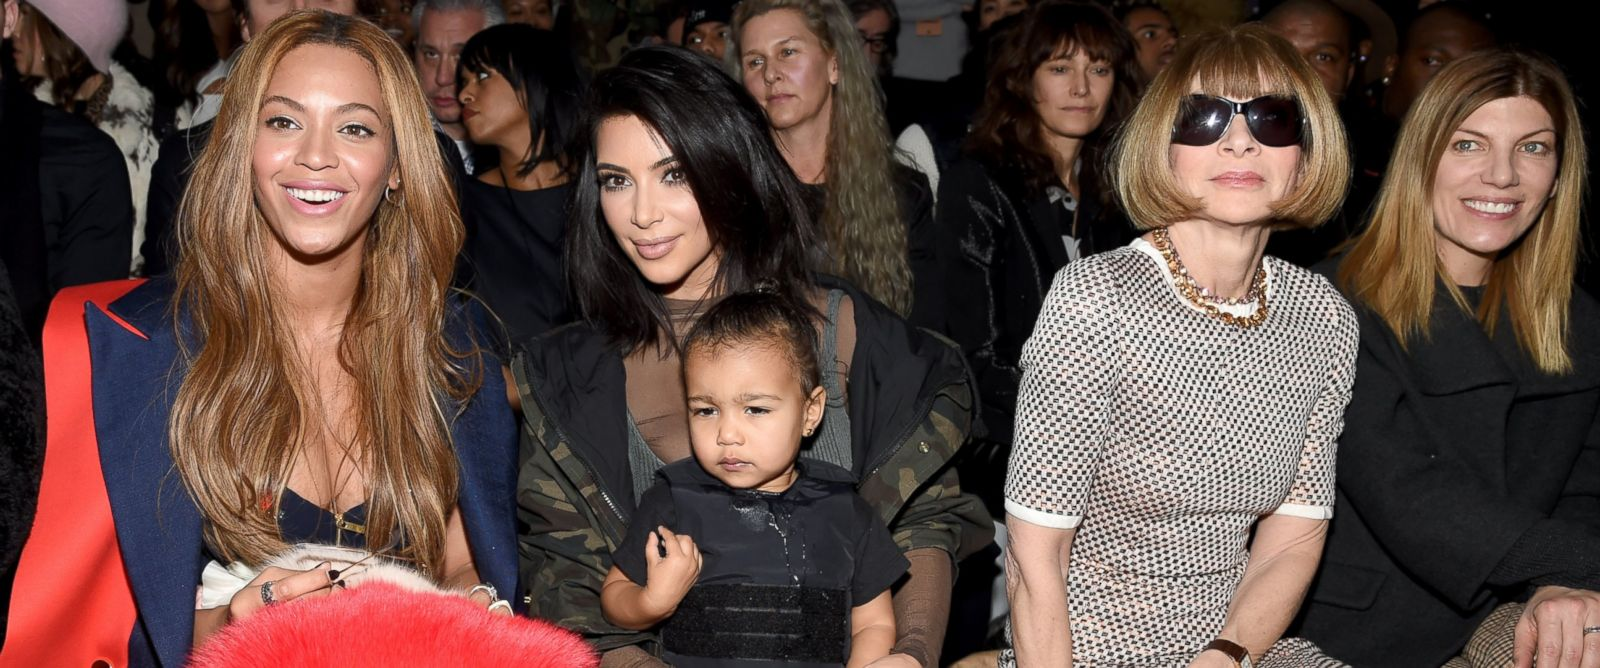 PHOTO: Beyonce, Kim Kardashian with daughter North and Anna Wintour attend the adidas Originals x Kanye West YEEZY SEASON 1 fashion show during New York Fashion Week Fall 2015 at Skylight Clarkson Sq., Feb. 12, 2015, in New York.